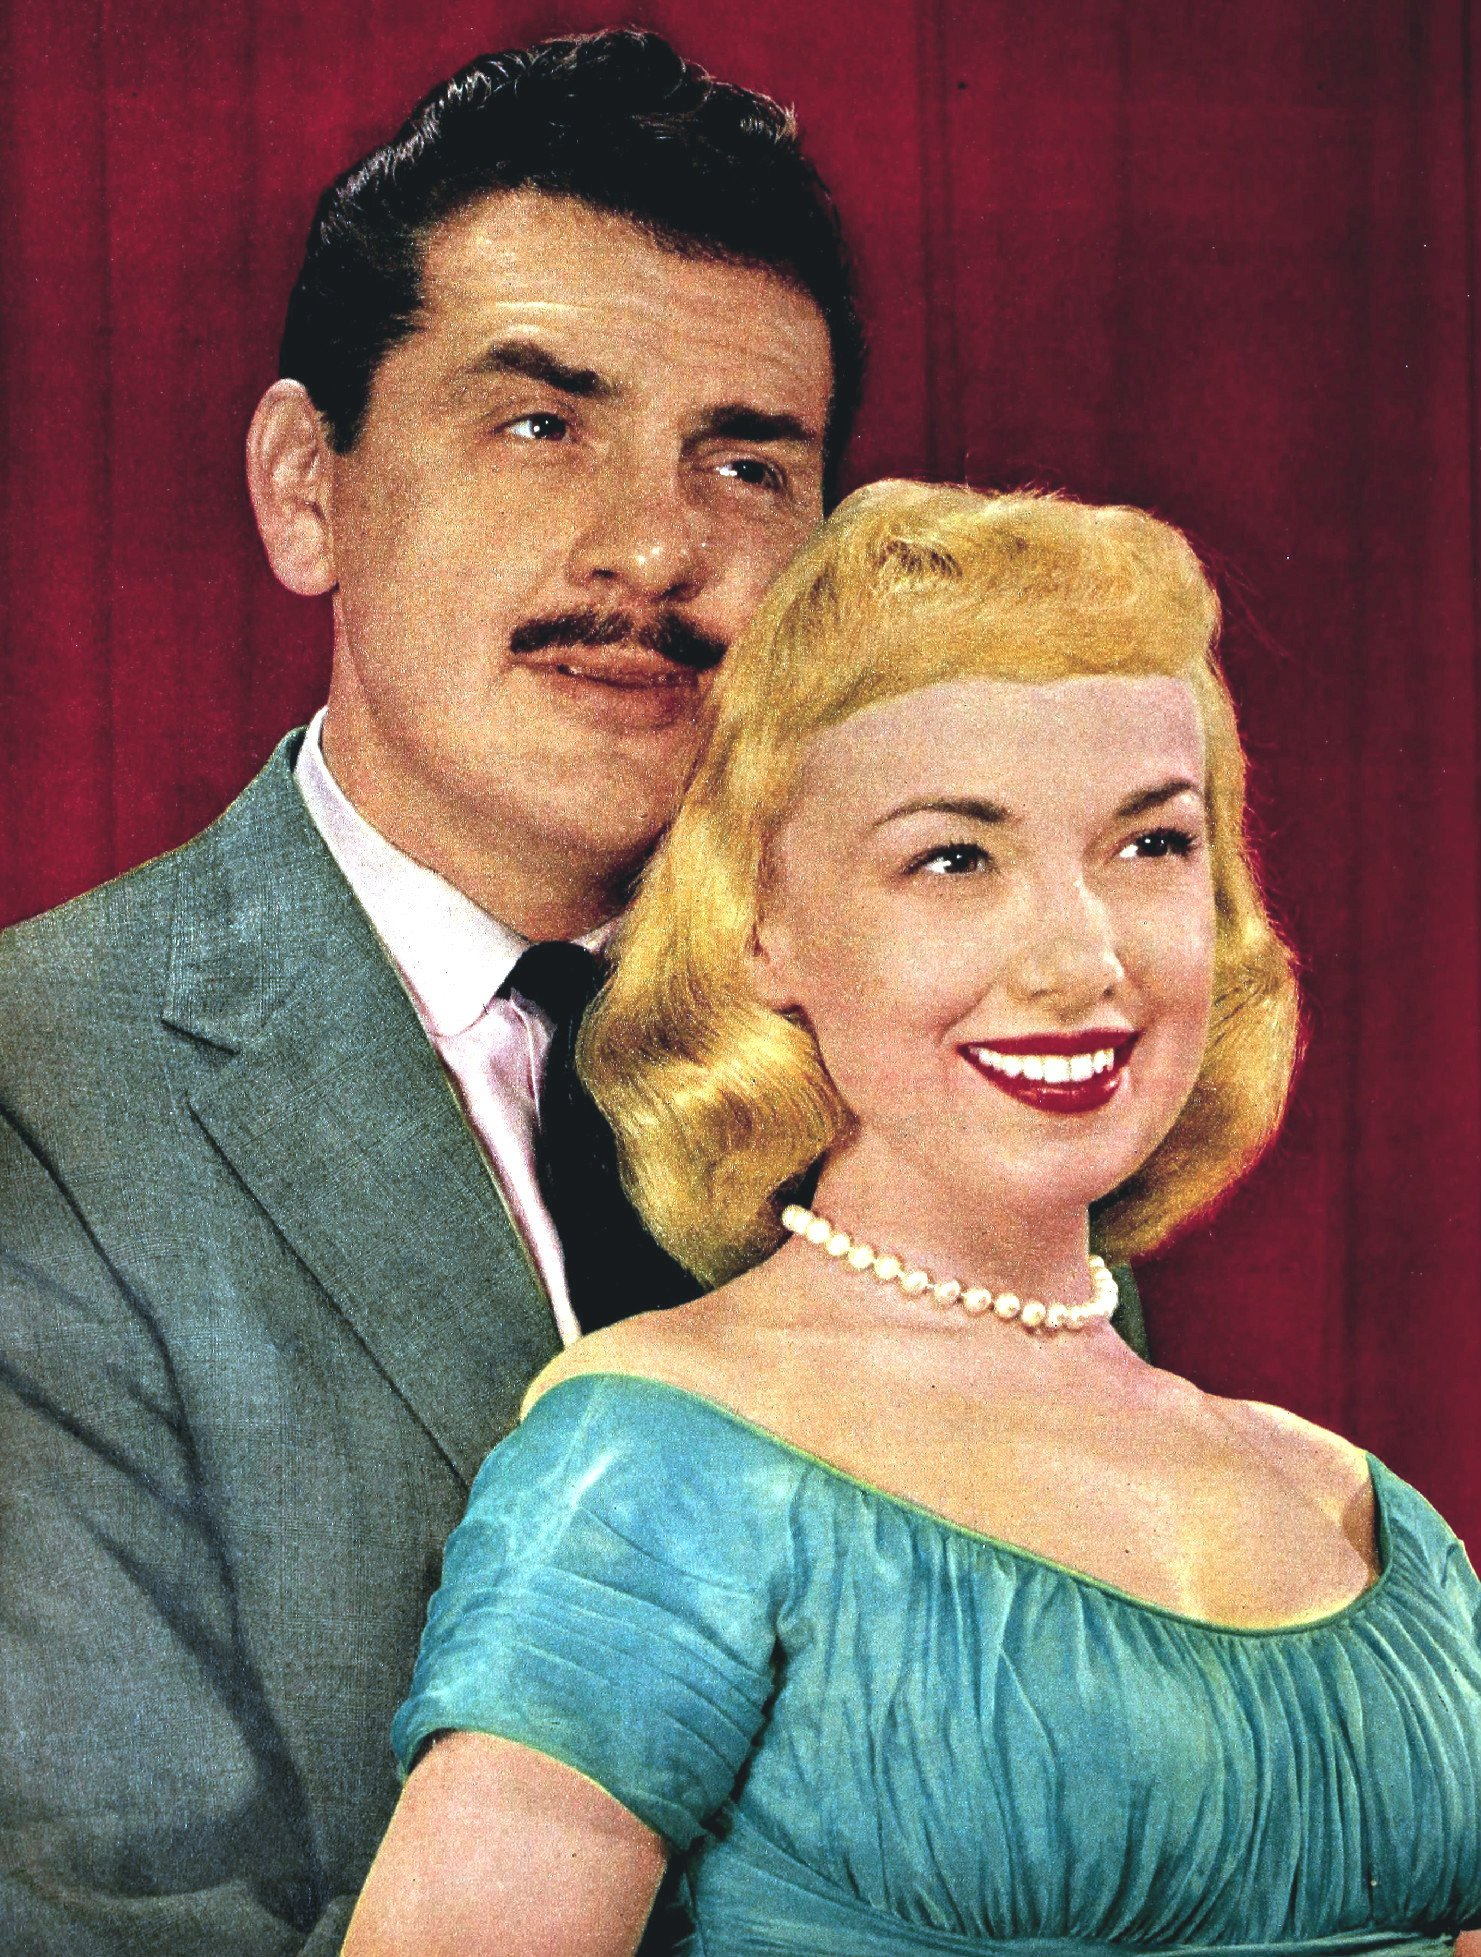 Ernie Kovacs and his wife Edie Adams in 1956. | Source: Wikimedia Commons